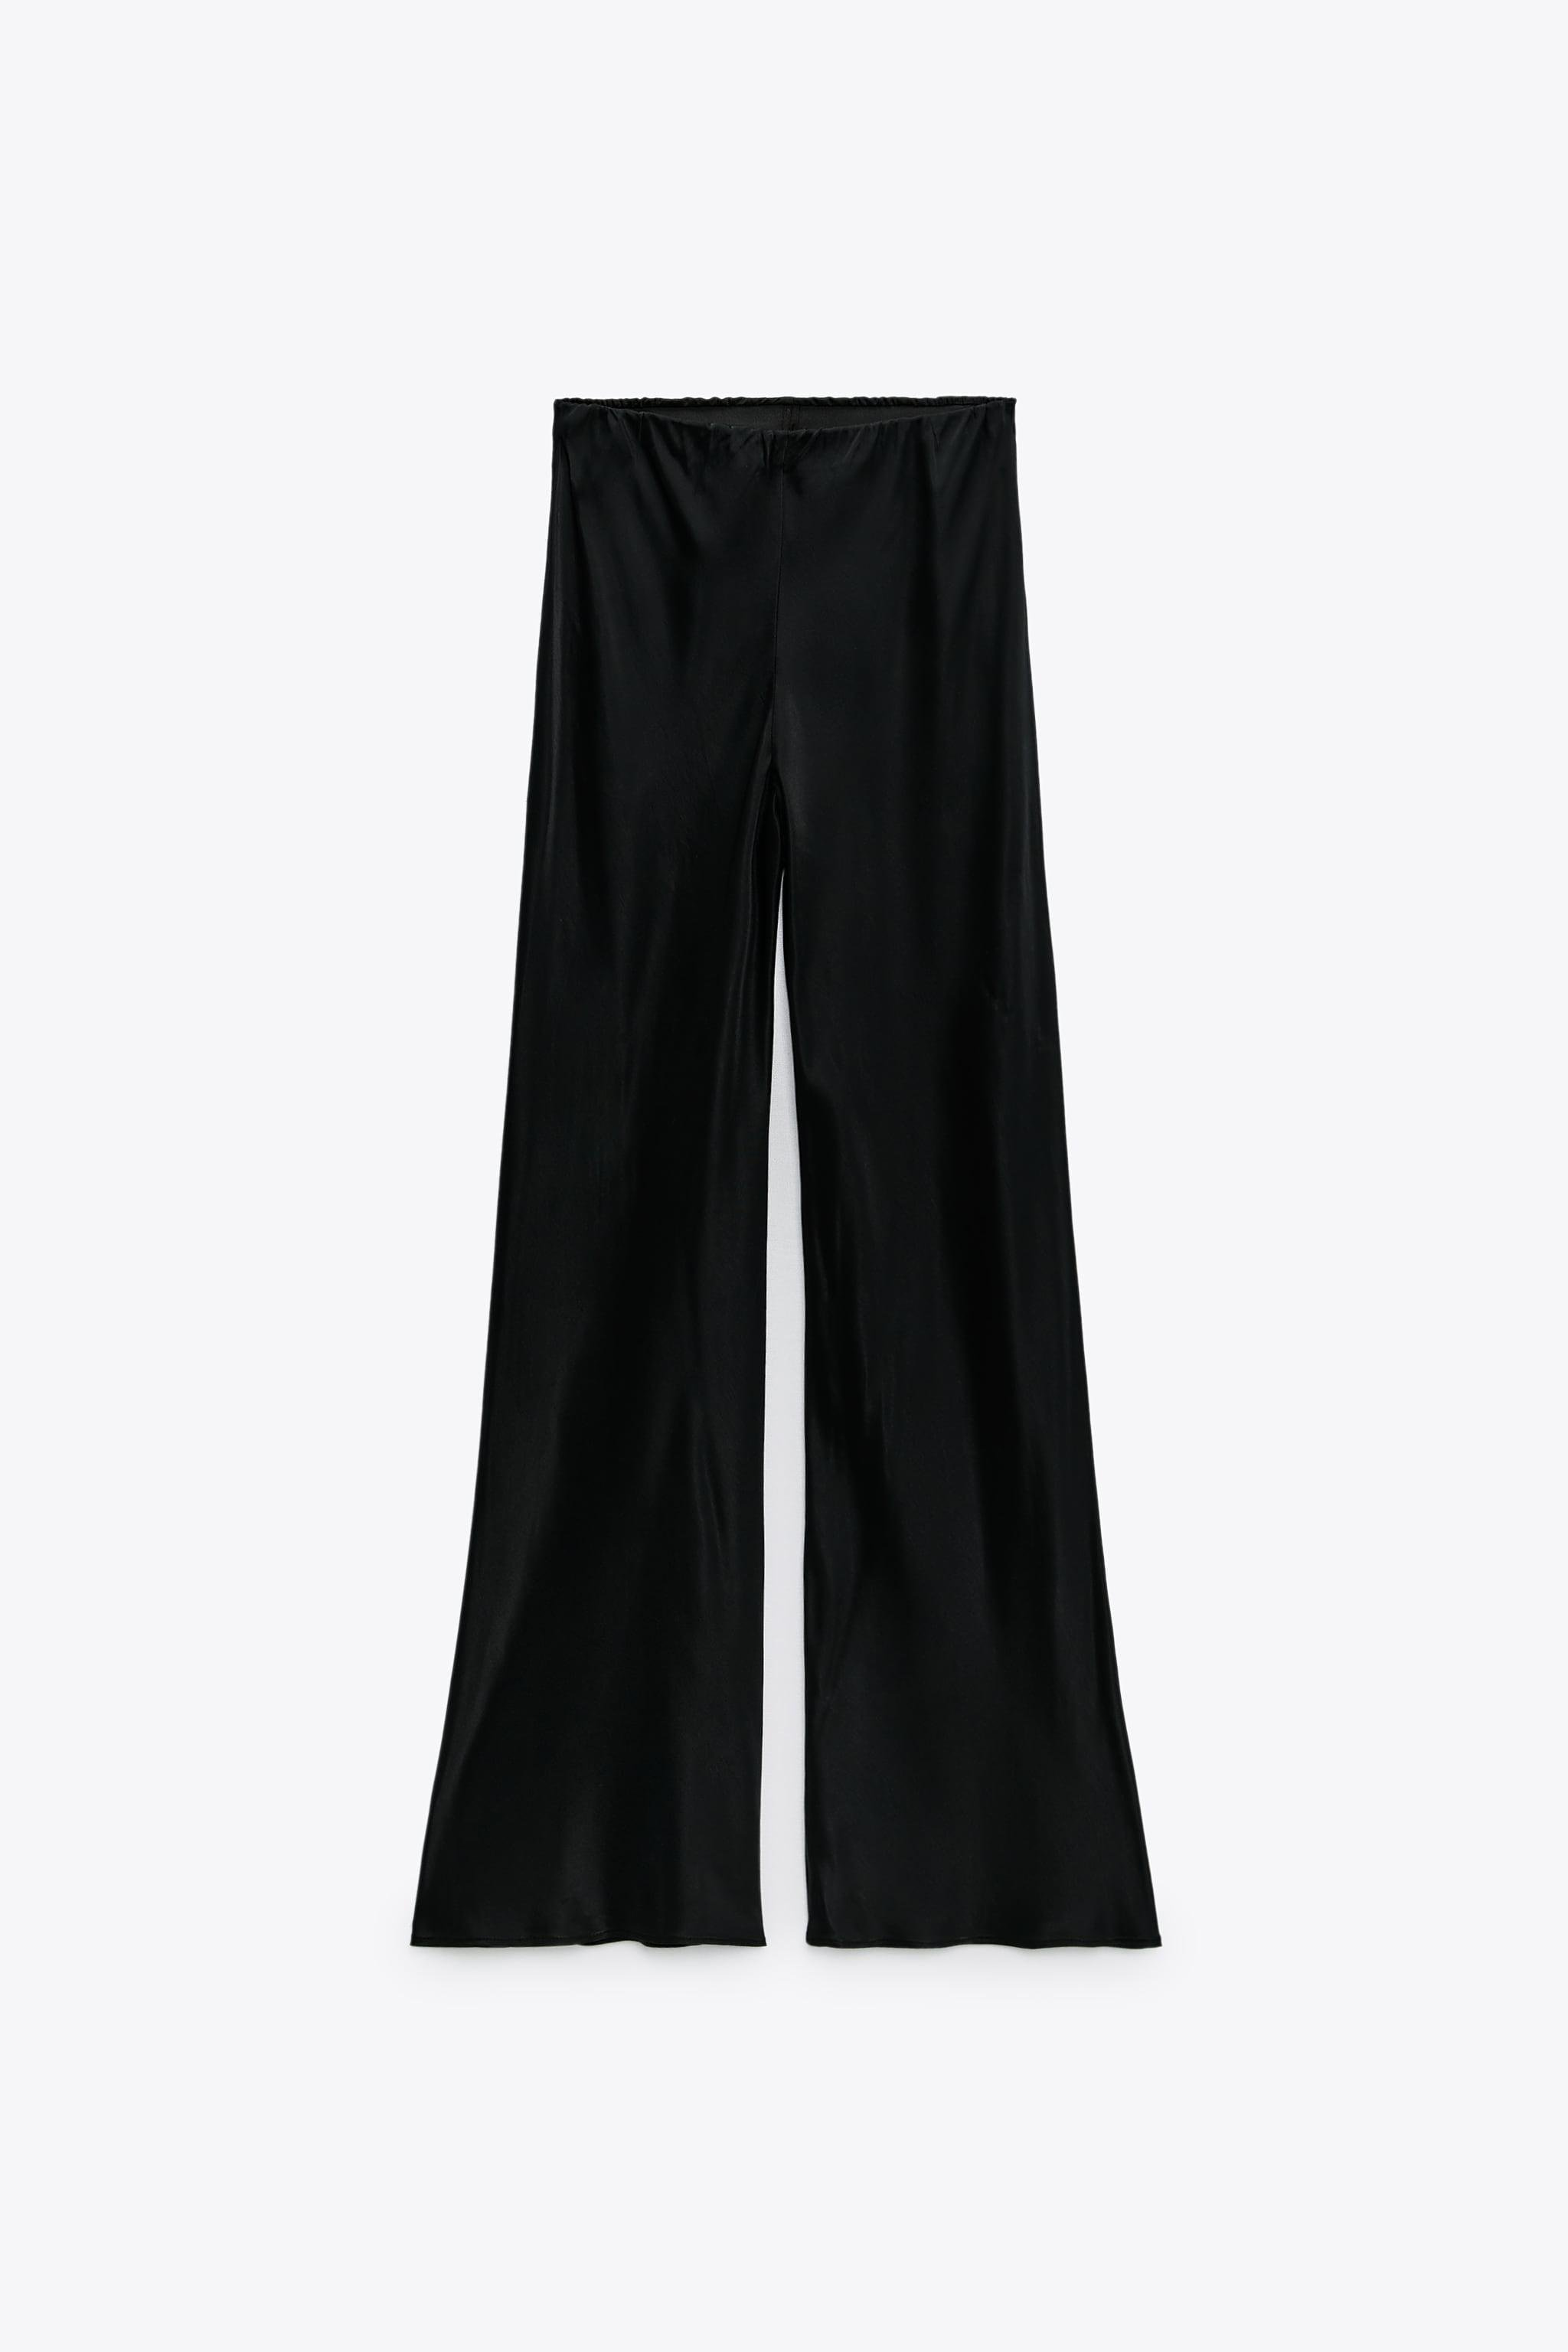 FLARED SATIN EFFECT PANTS 5